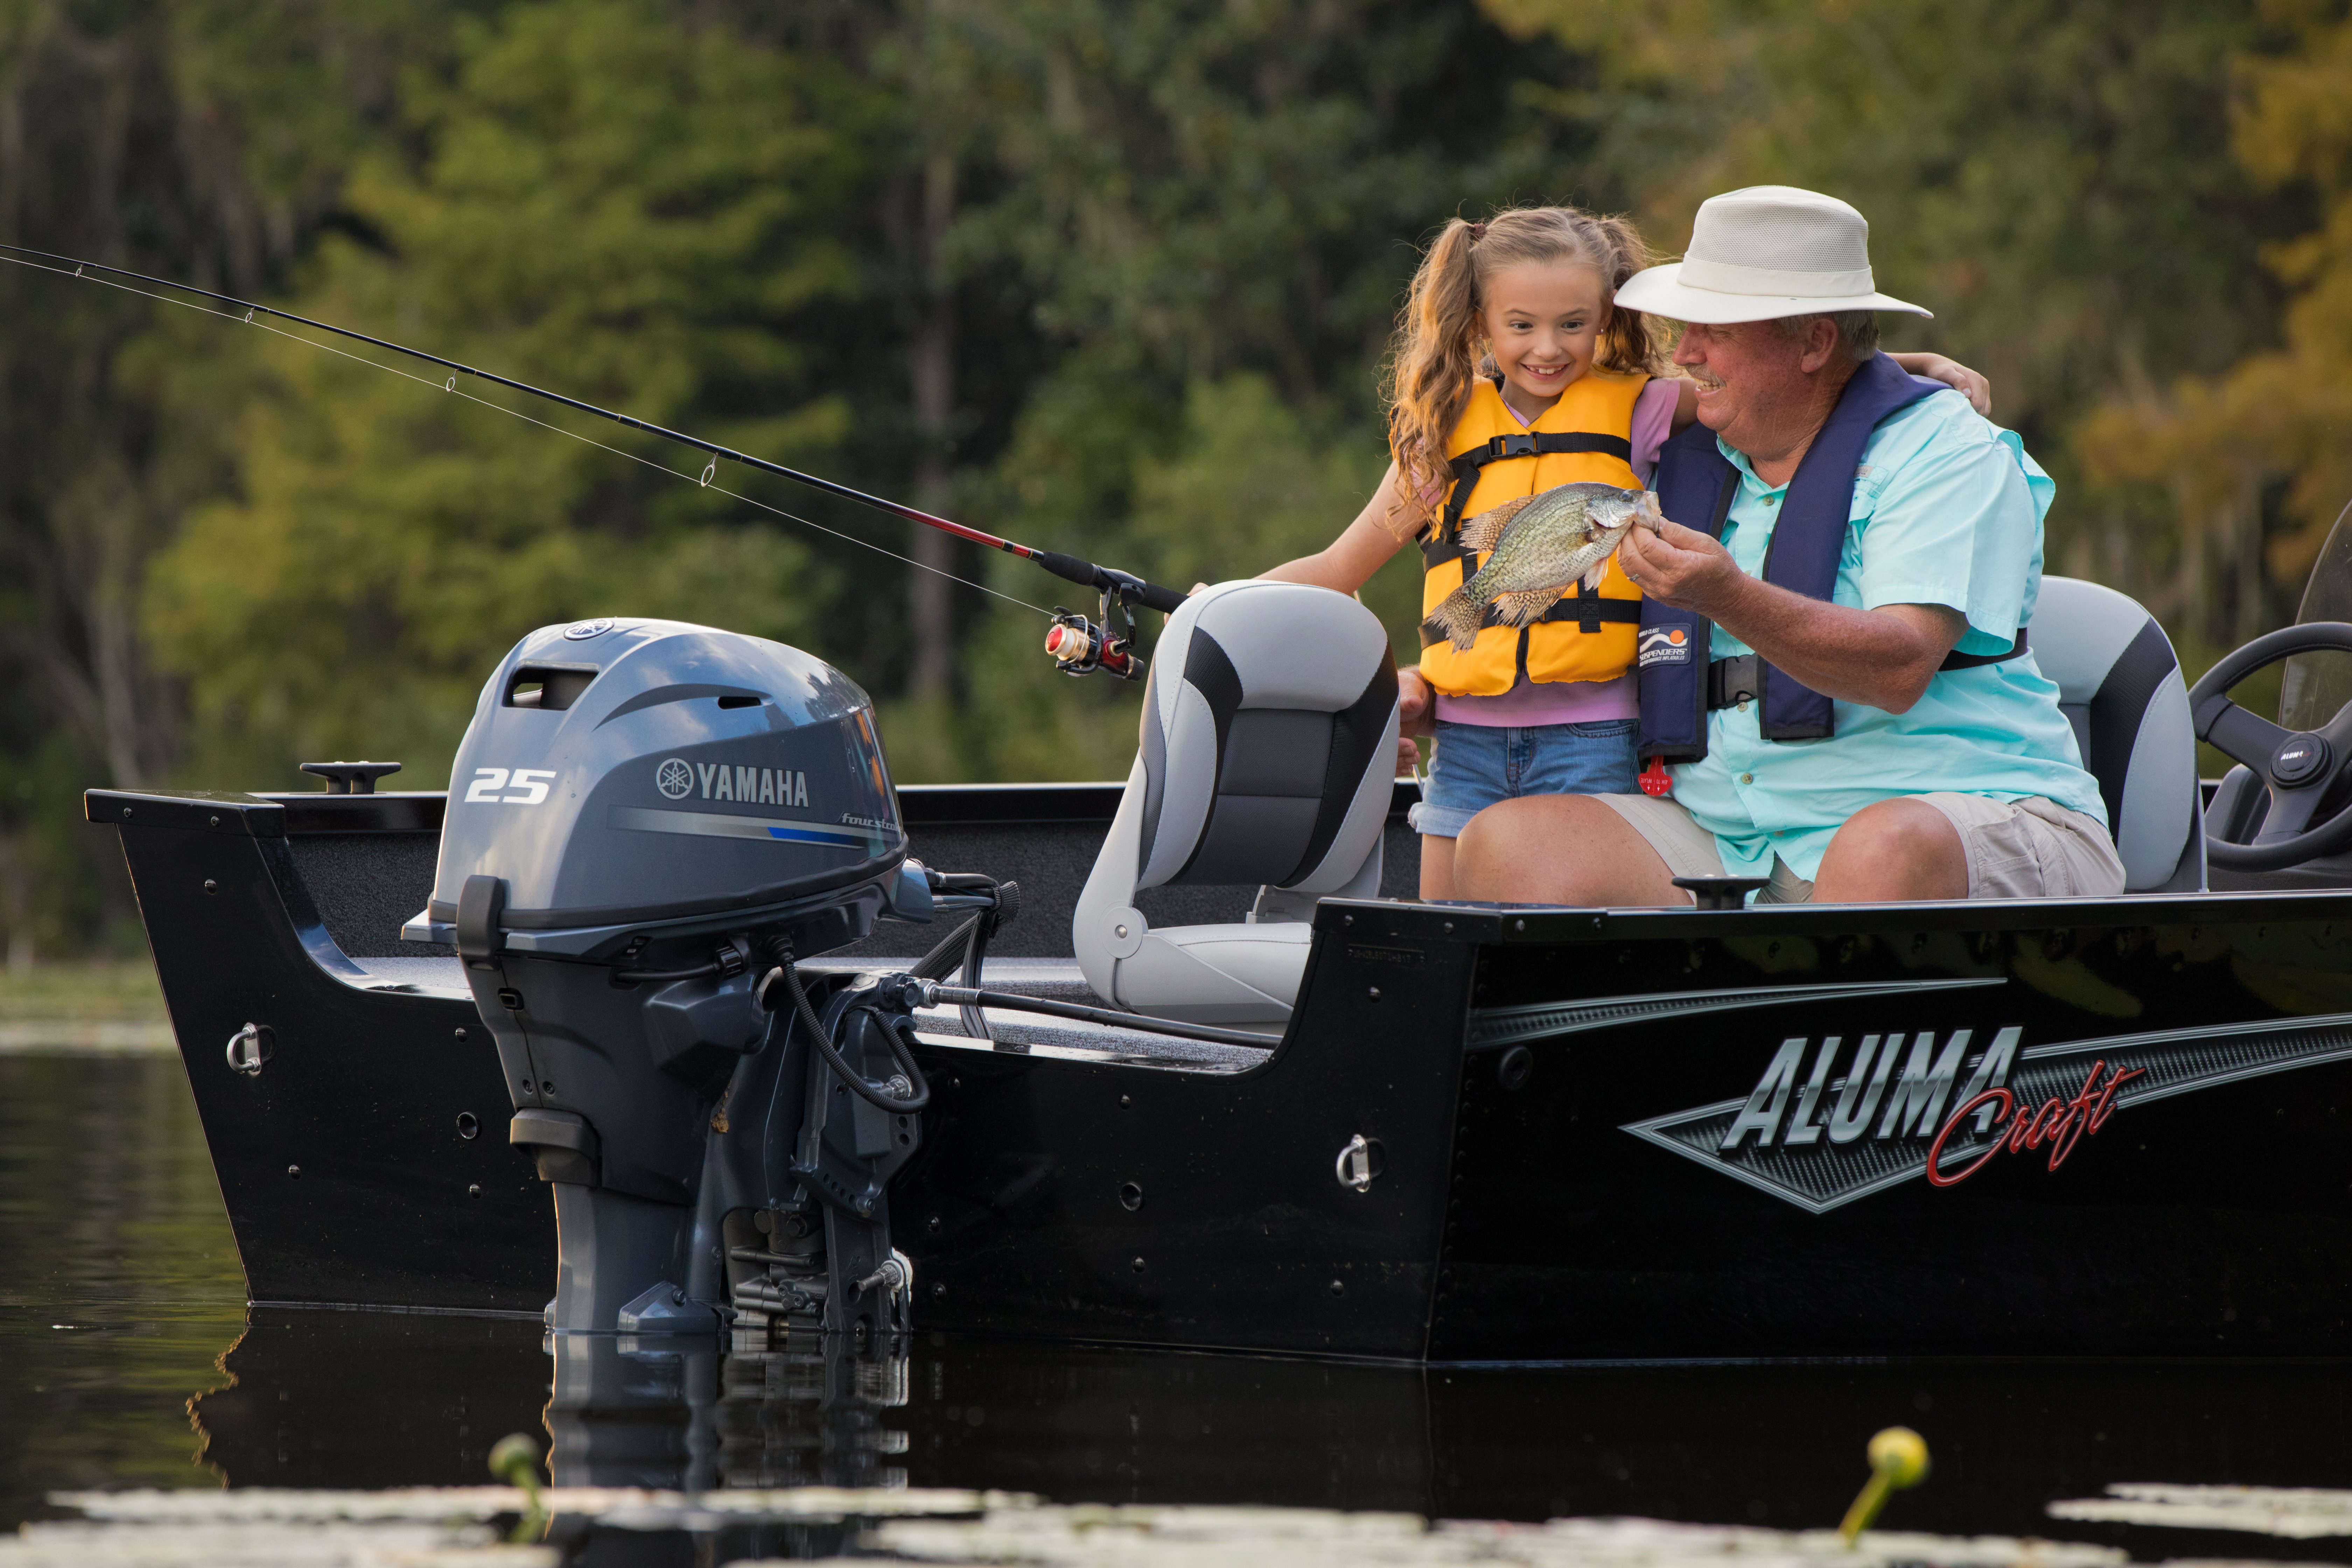 F25 Specialty | Yamaha Outboards